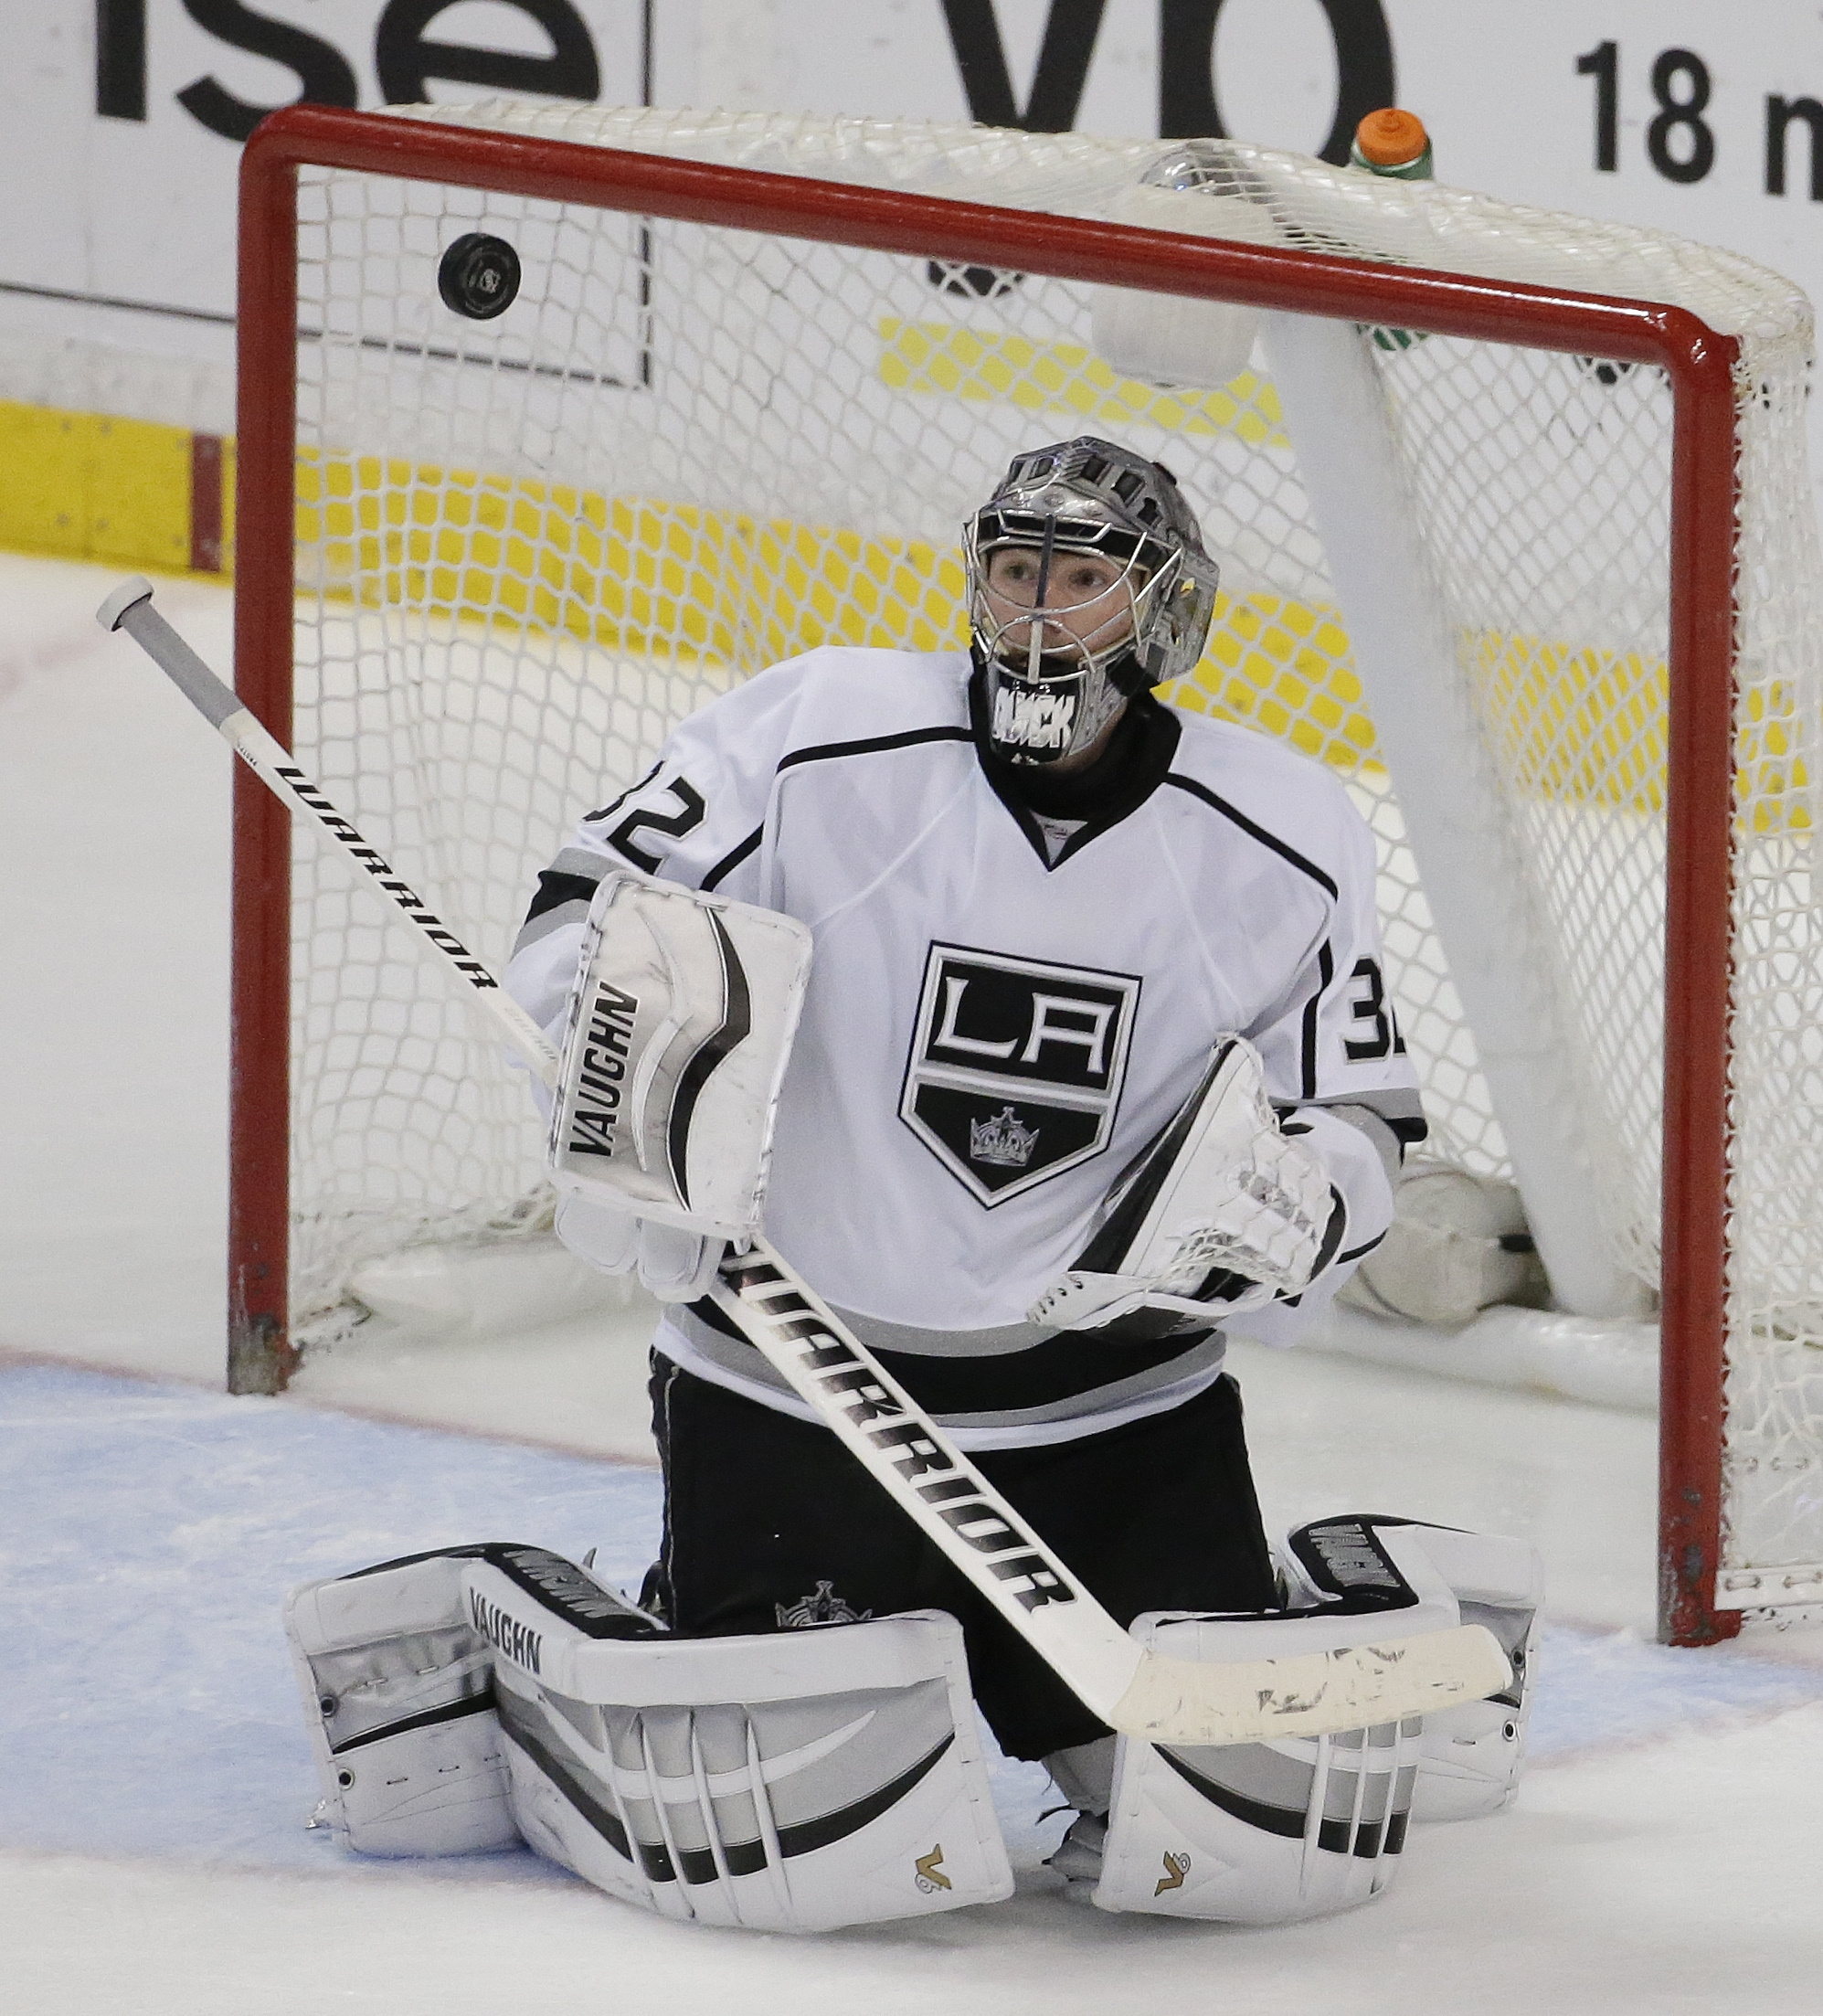 Kings goalie Jonathan Quick is in a heated competition with Buffalo's Ryan Miller to be the starter for the American Olympic team.